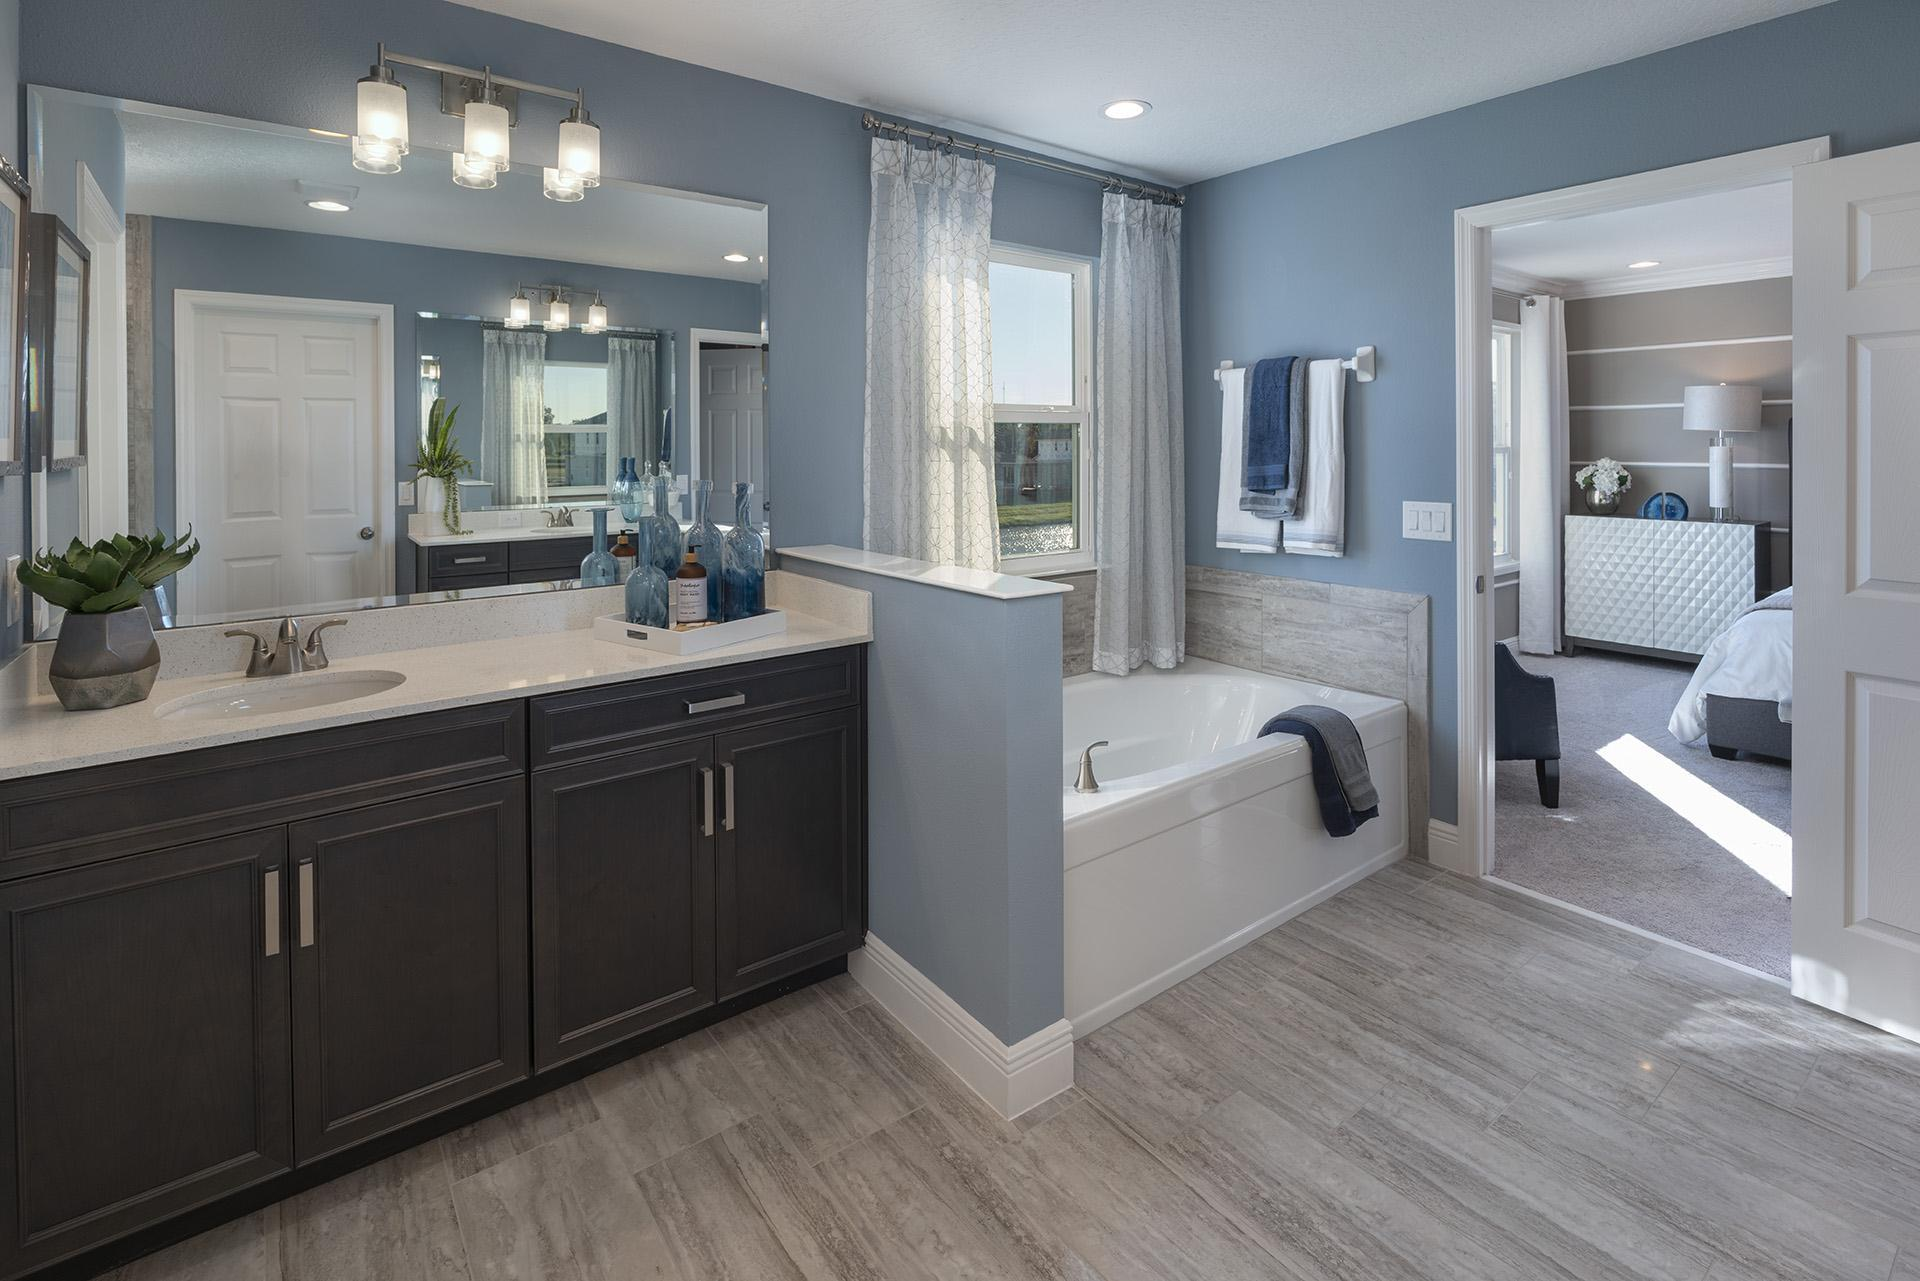 Bathroom featured in the Osceola Executive By Hanover Family Builders in Orlando, FL